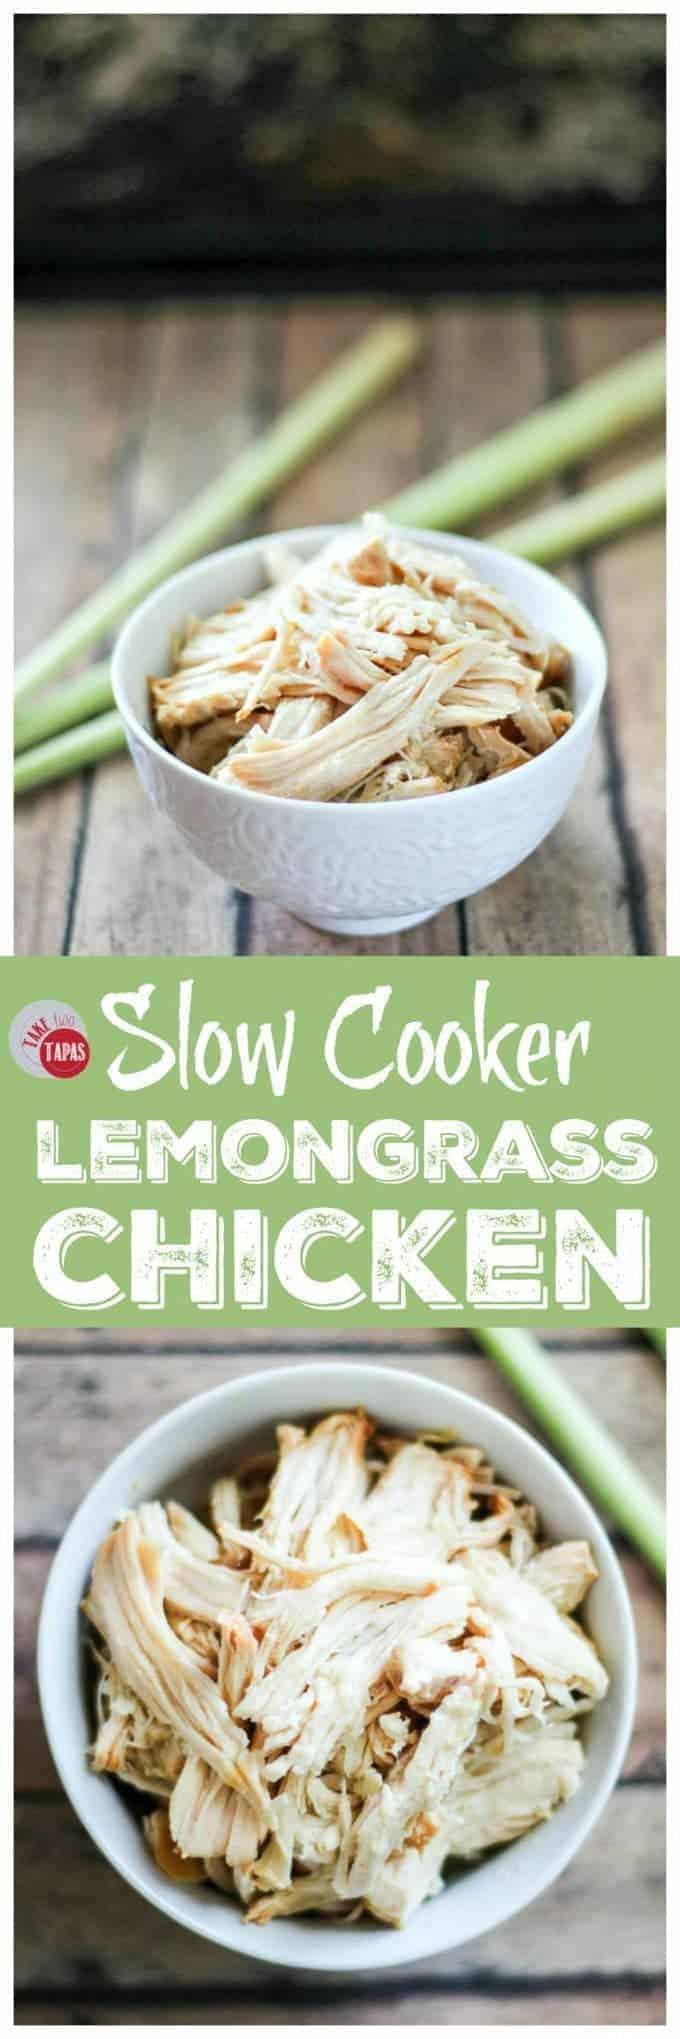 "Pinterest collage image with text ""slow cooker lemongrass chicken"""